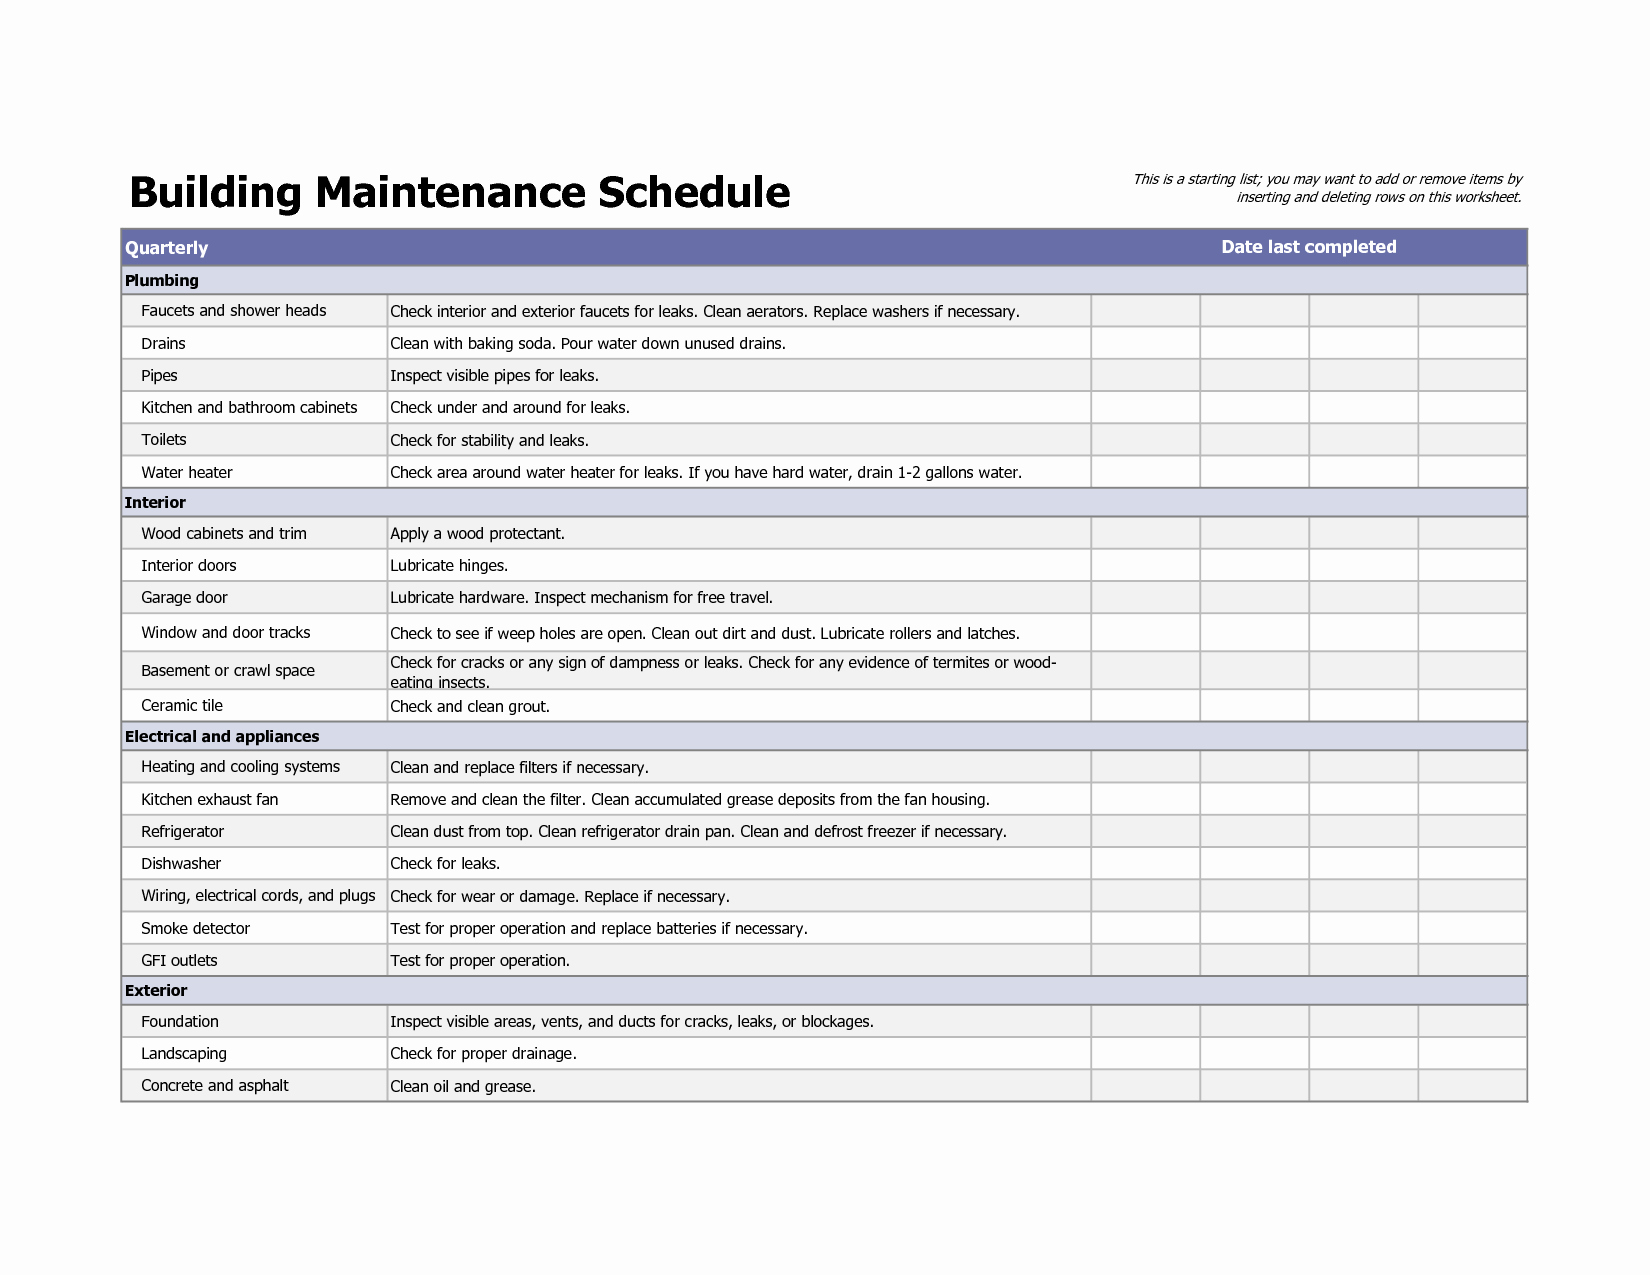 Vehicle Maintenance Schedule Template Excel Beautiful Vehicle Maintenance Schedule Template Excel